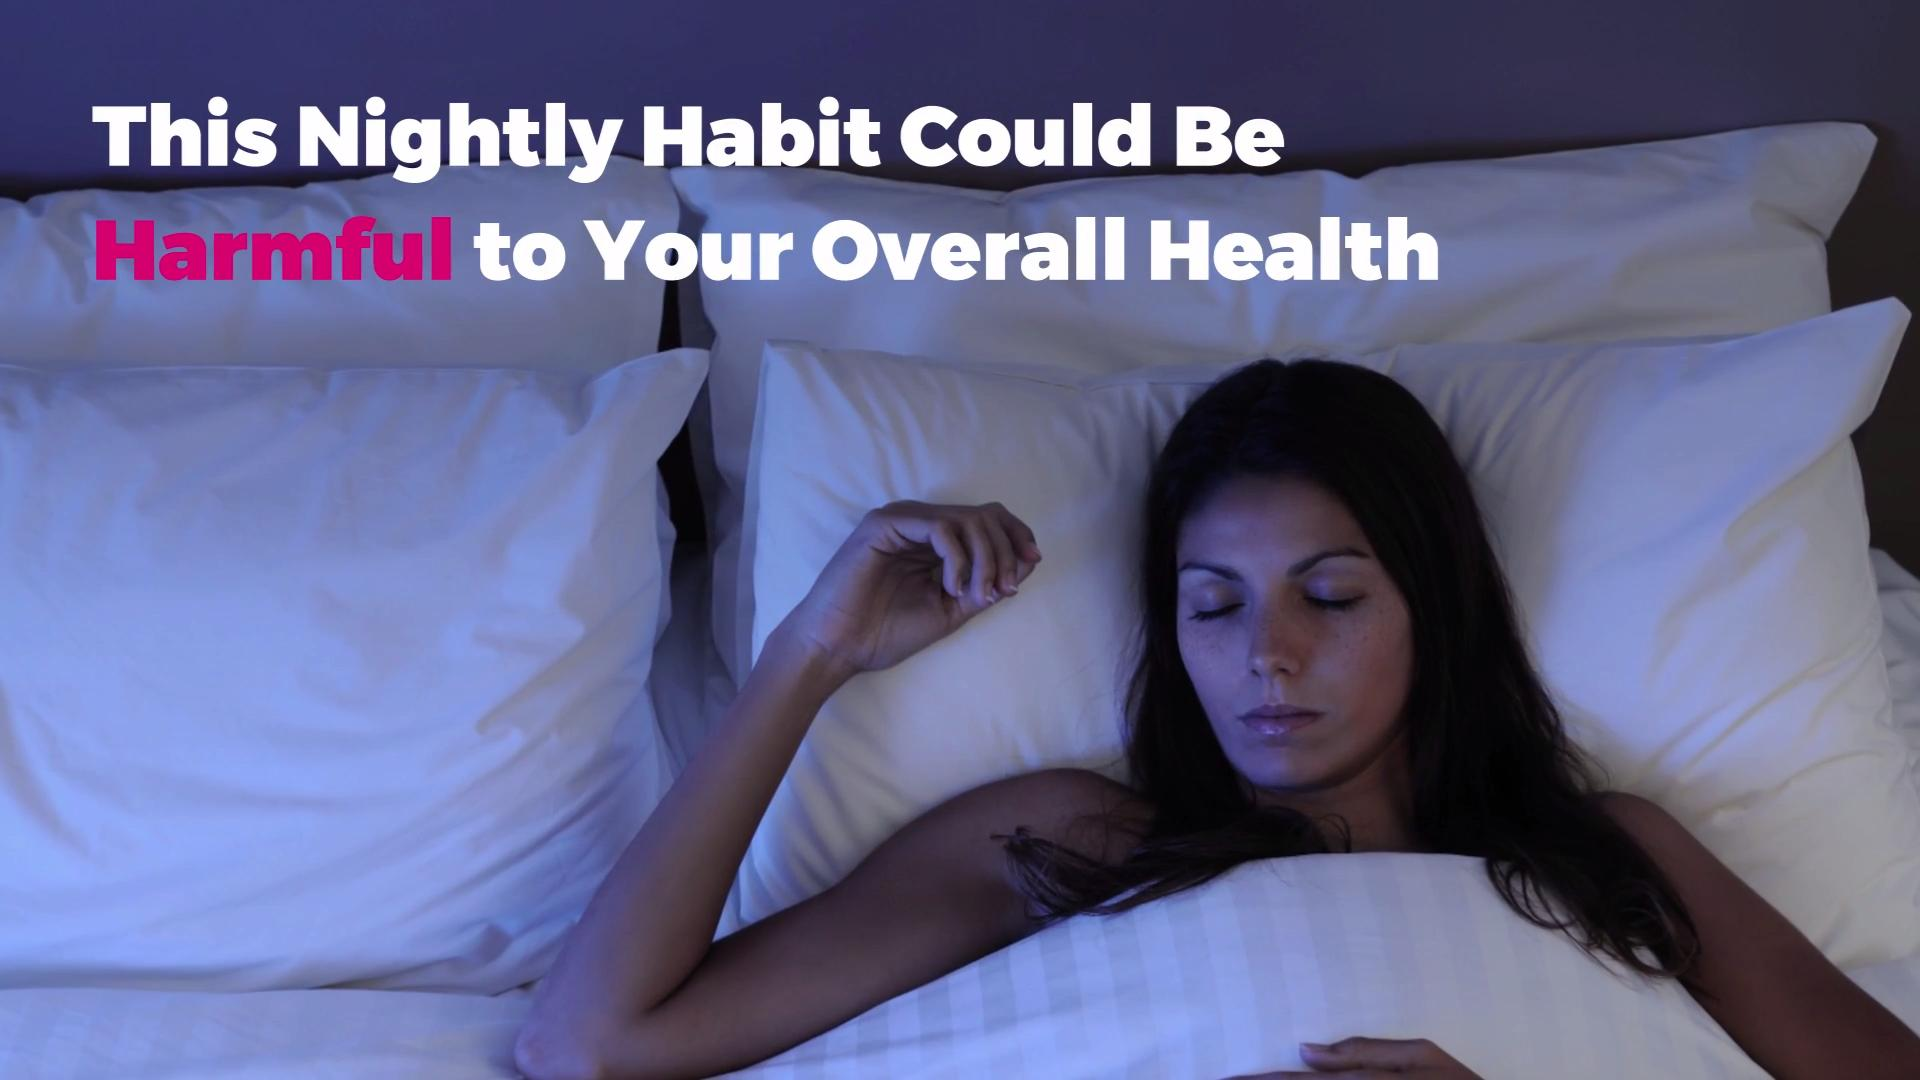 This Nightly Habit Could Be Harmful to Your Overall Health